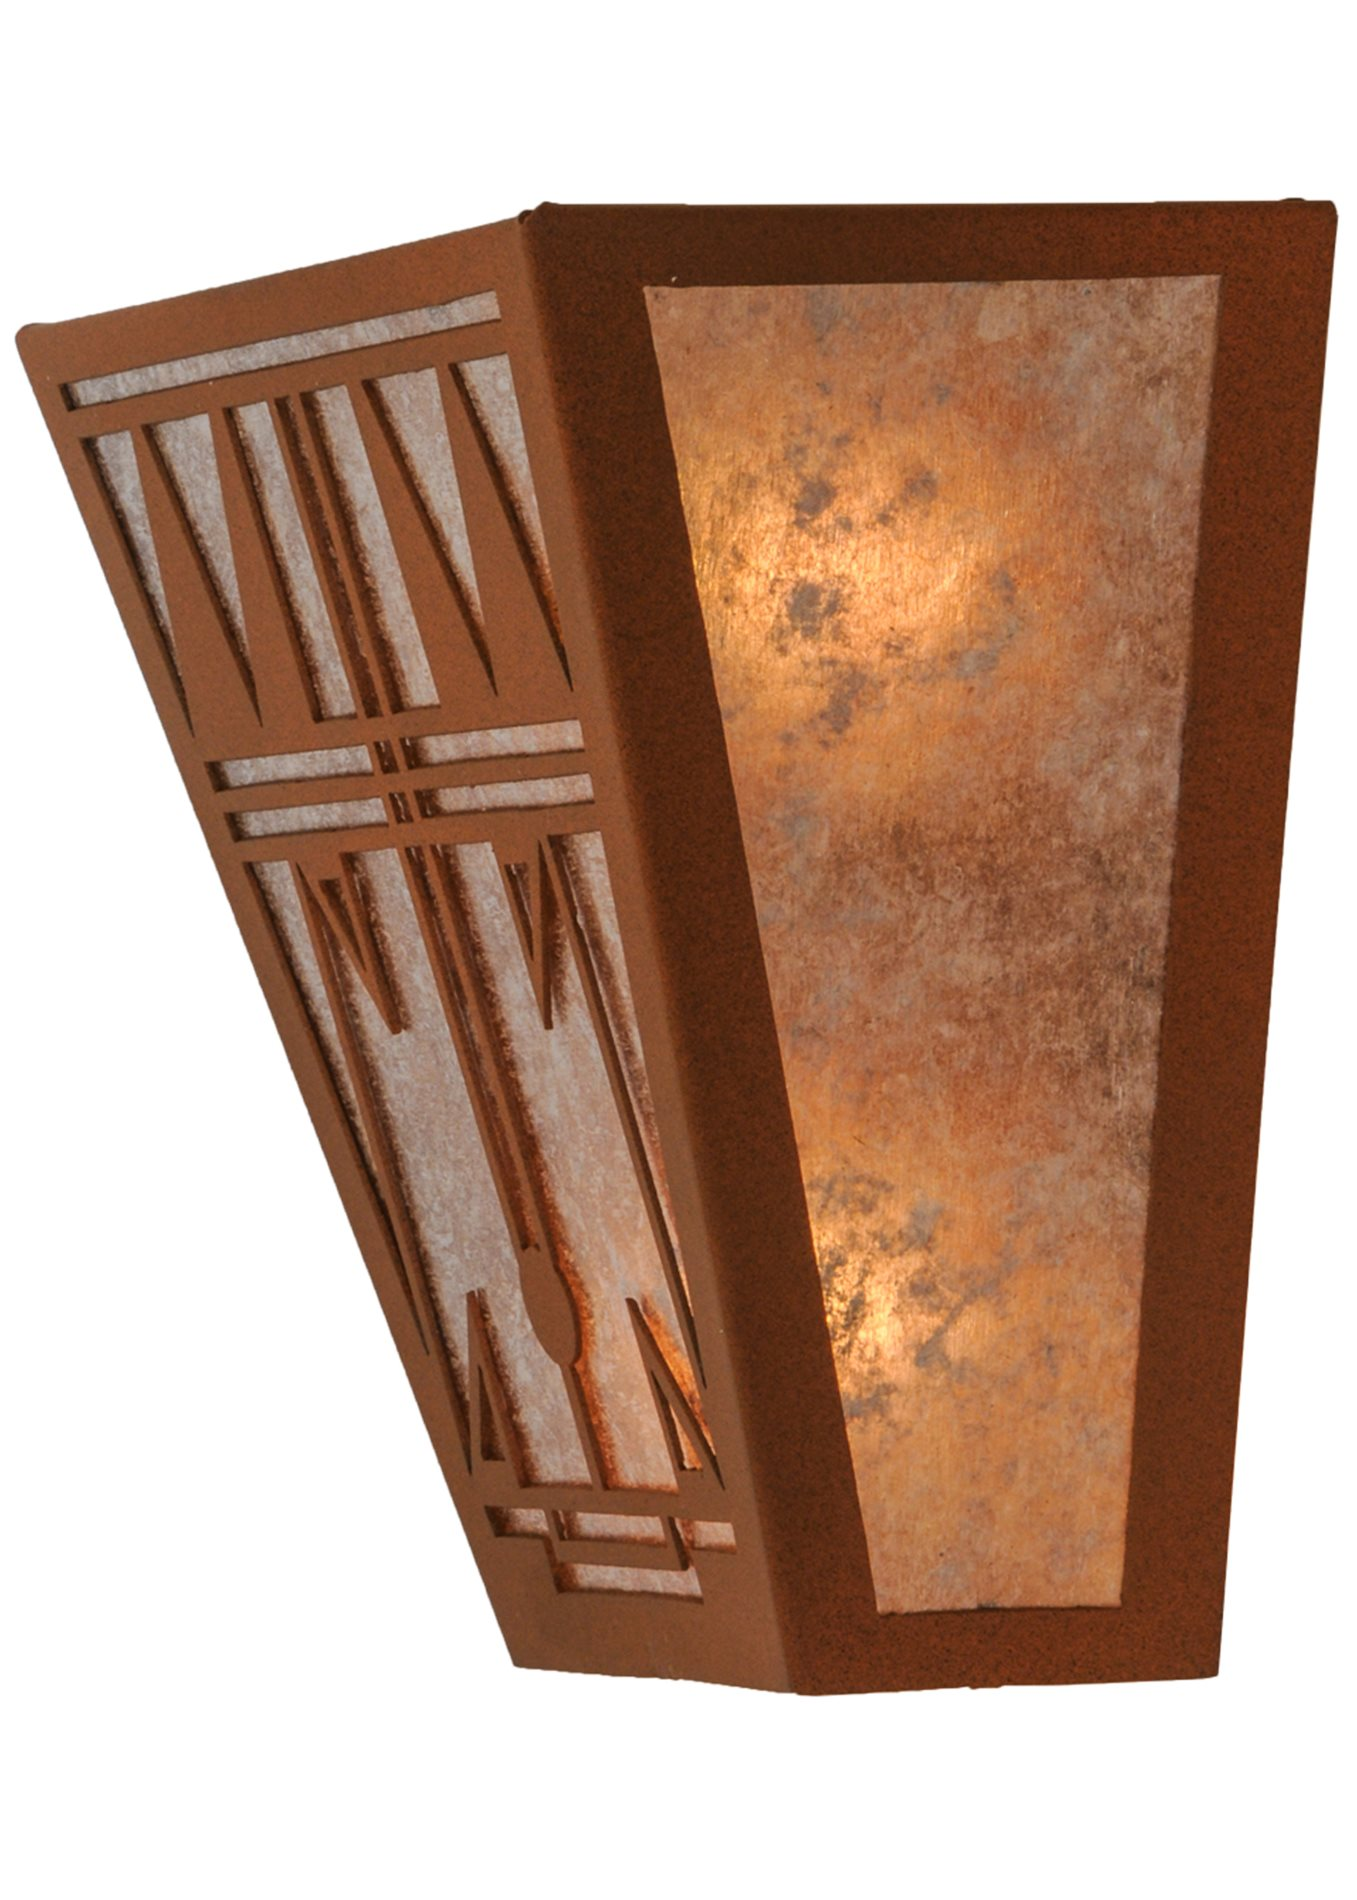 Meyda Tiffany 23930 Southwest Wall Sconce MD-23930